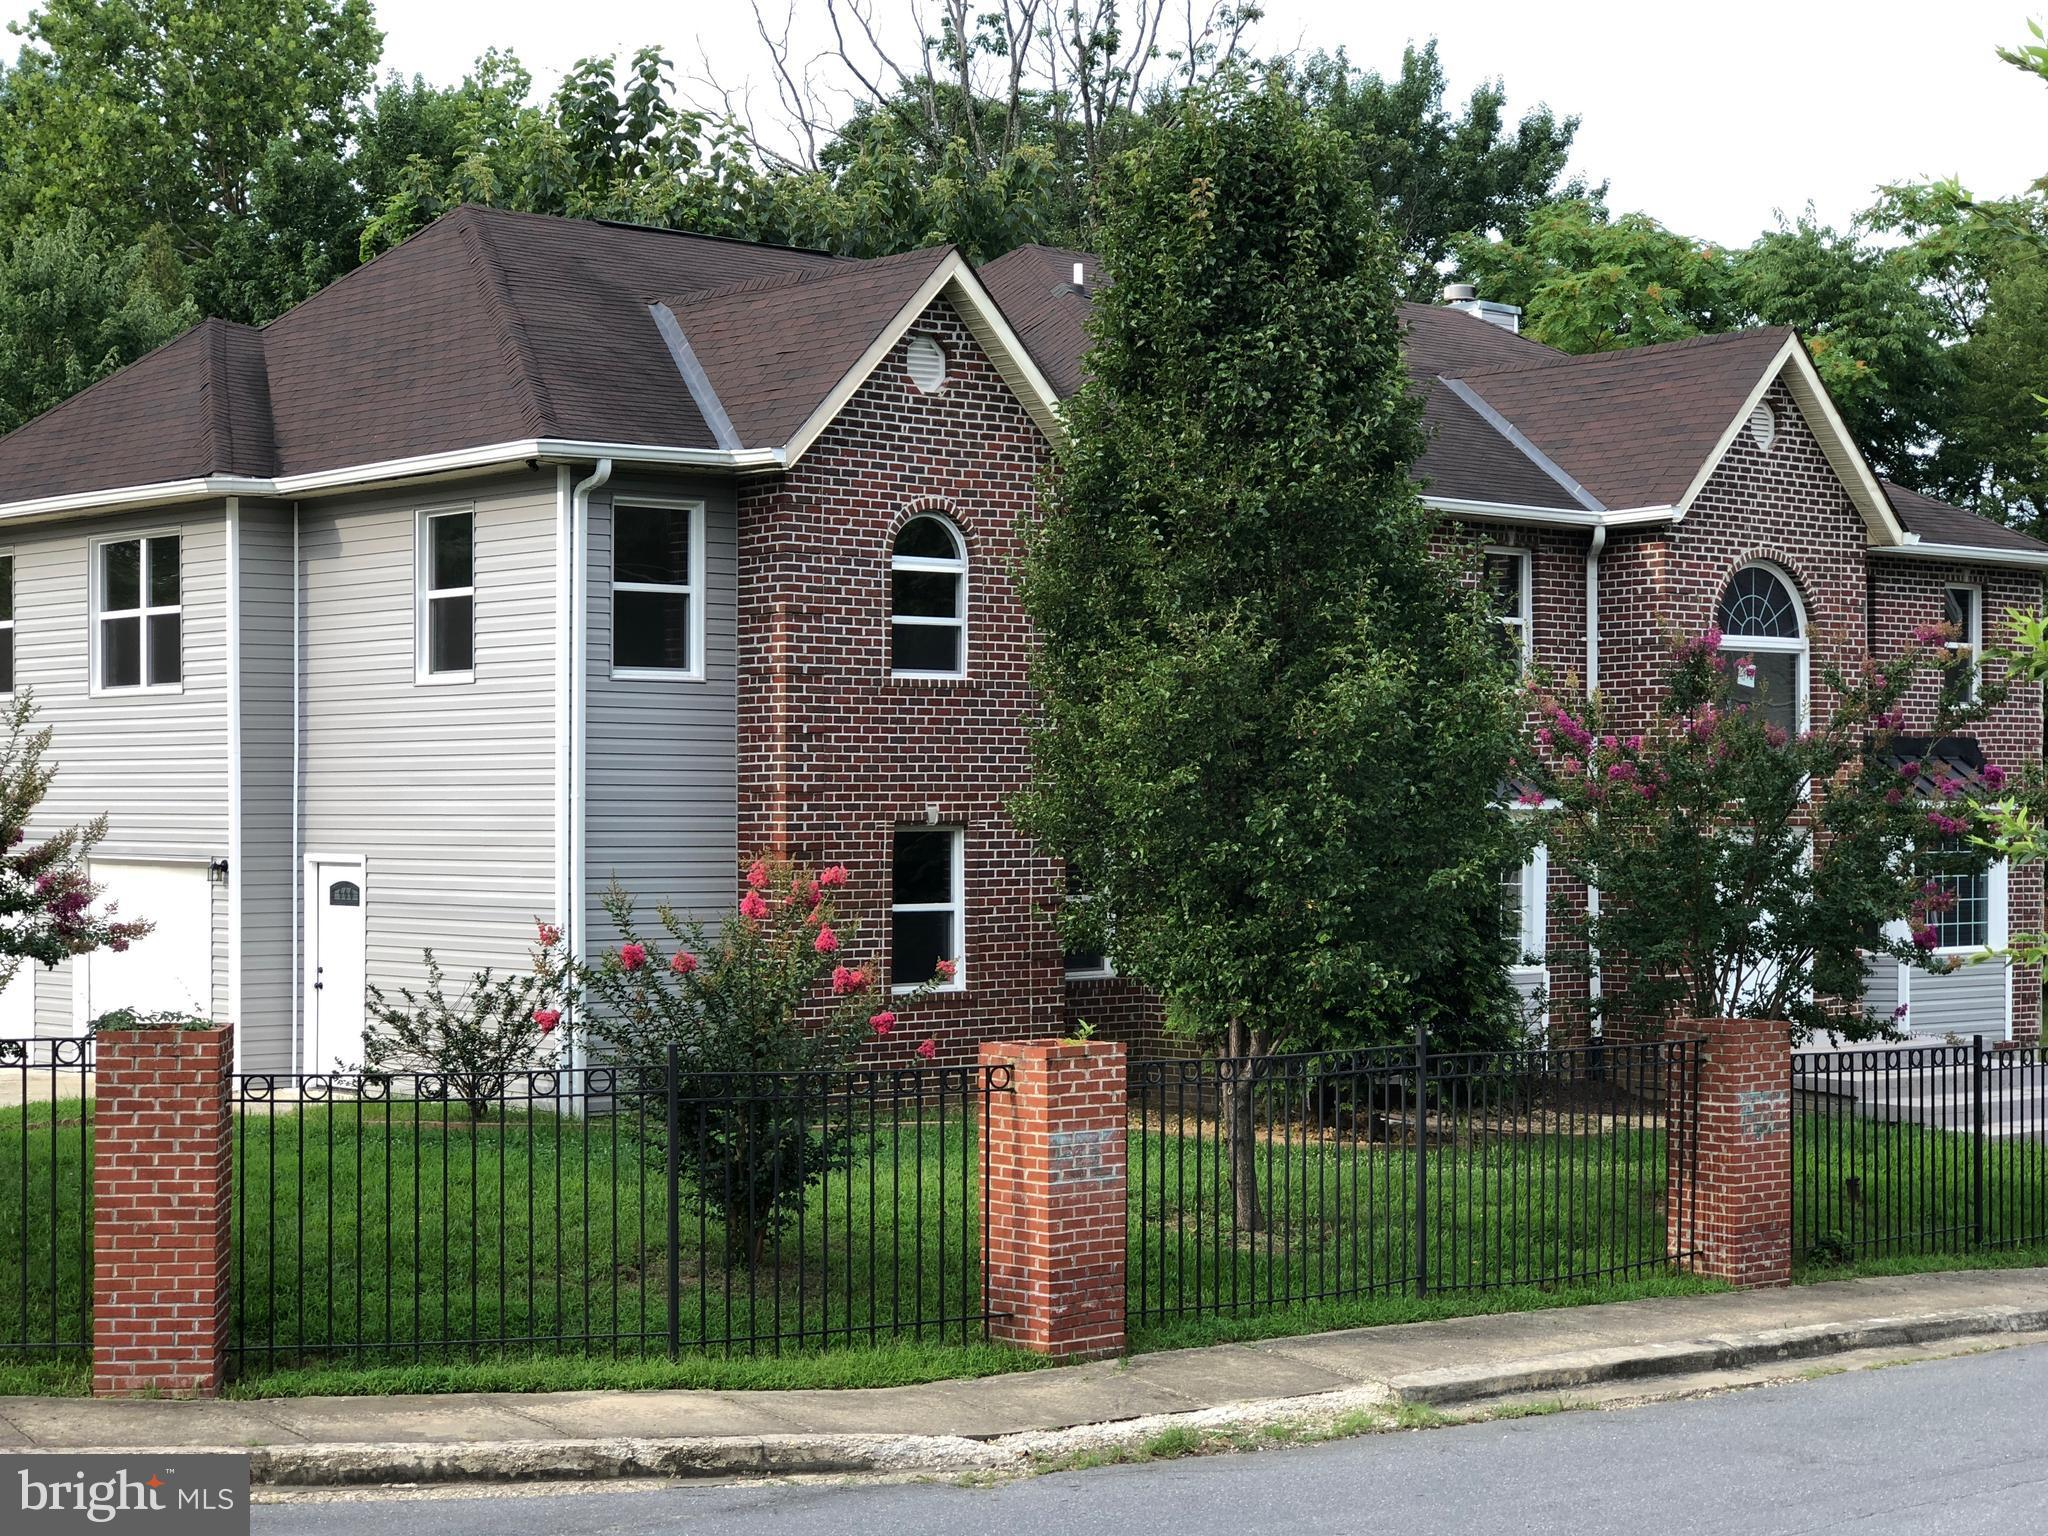 4941 CROSIER STREET, Suitland, 20746 | The Dave and Dave Team